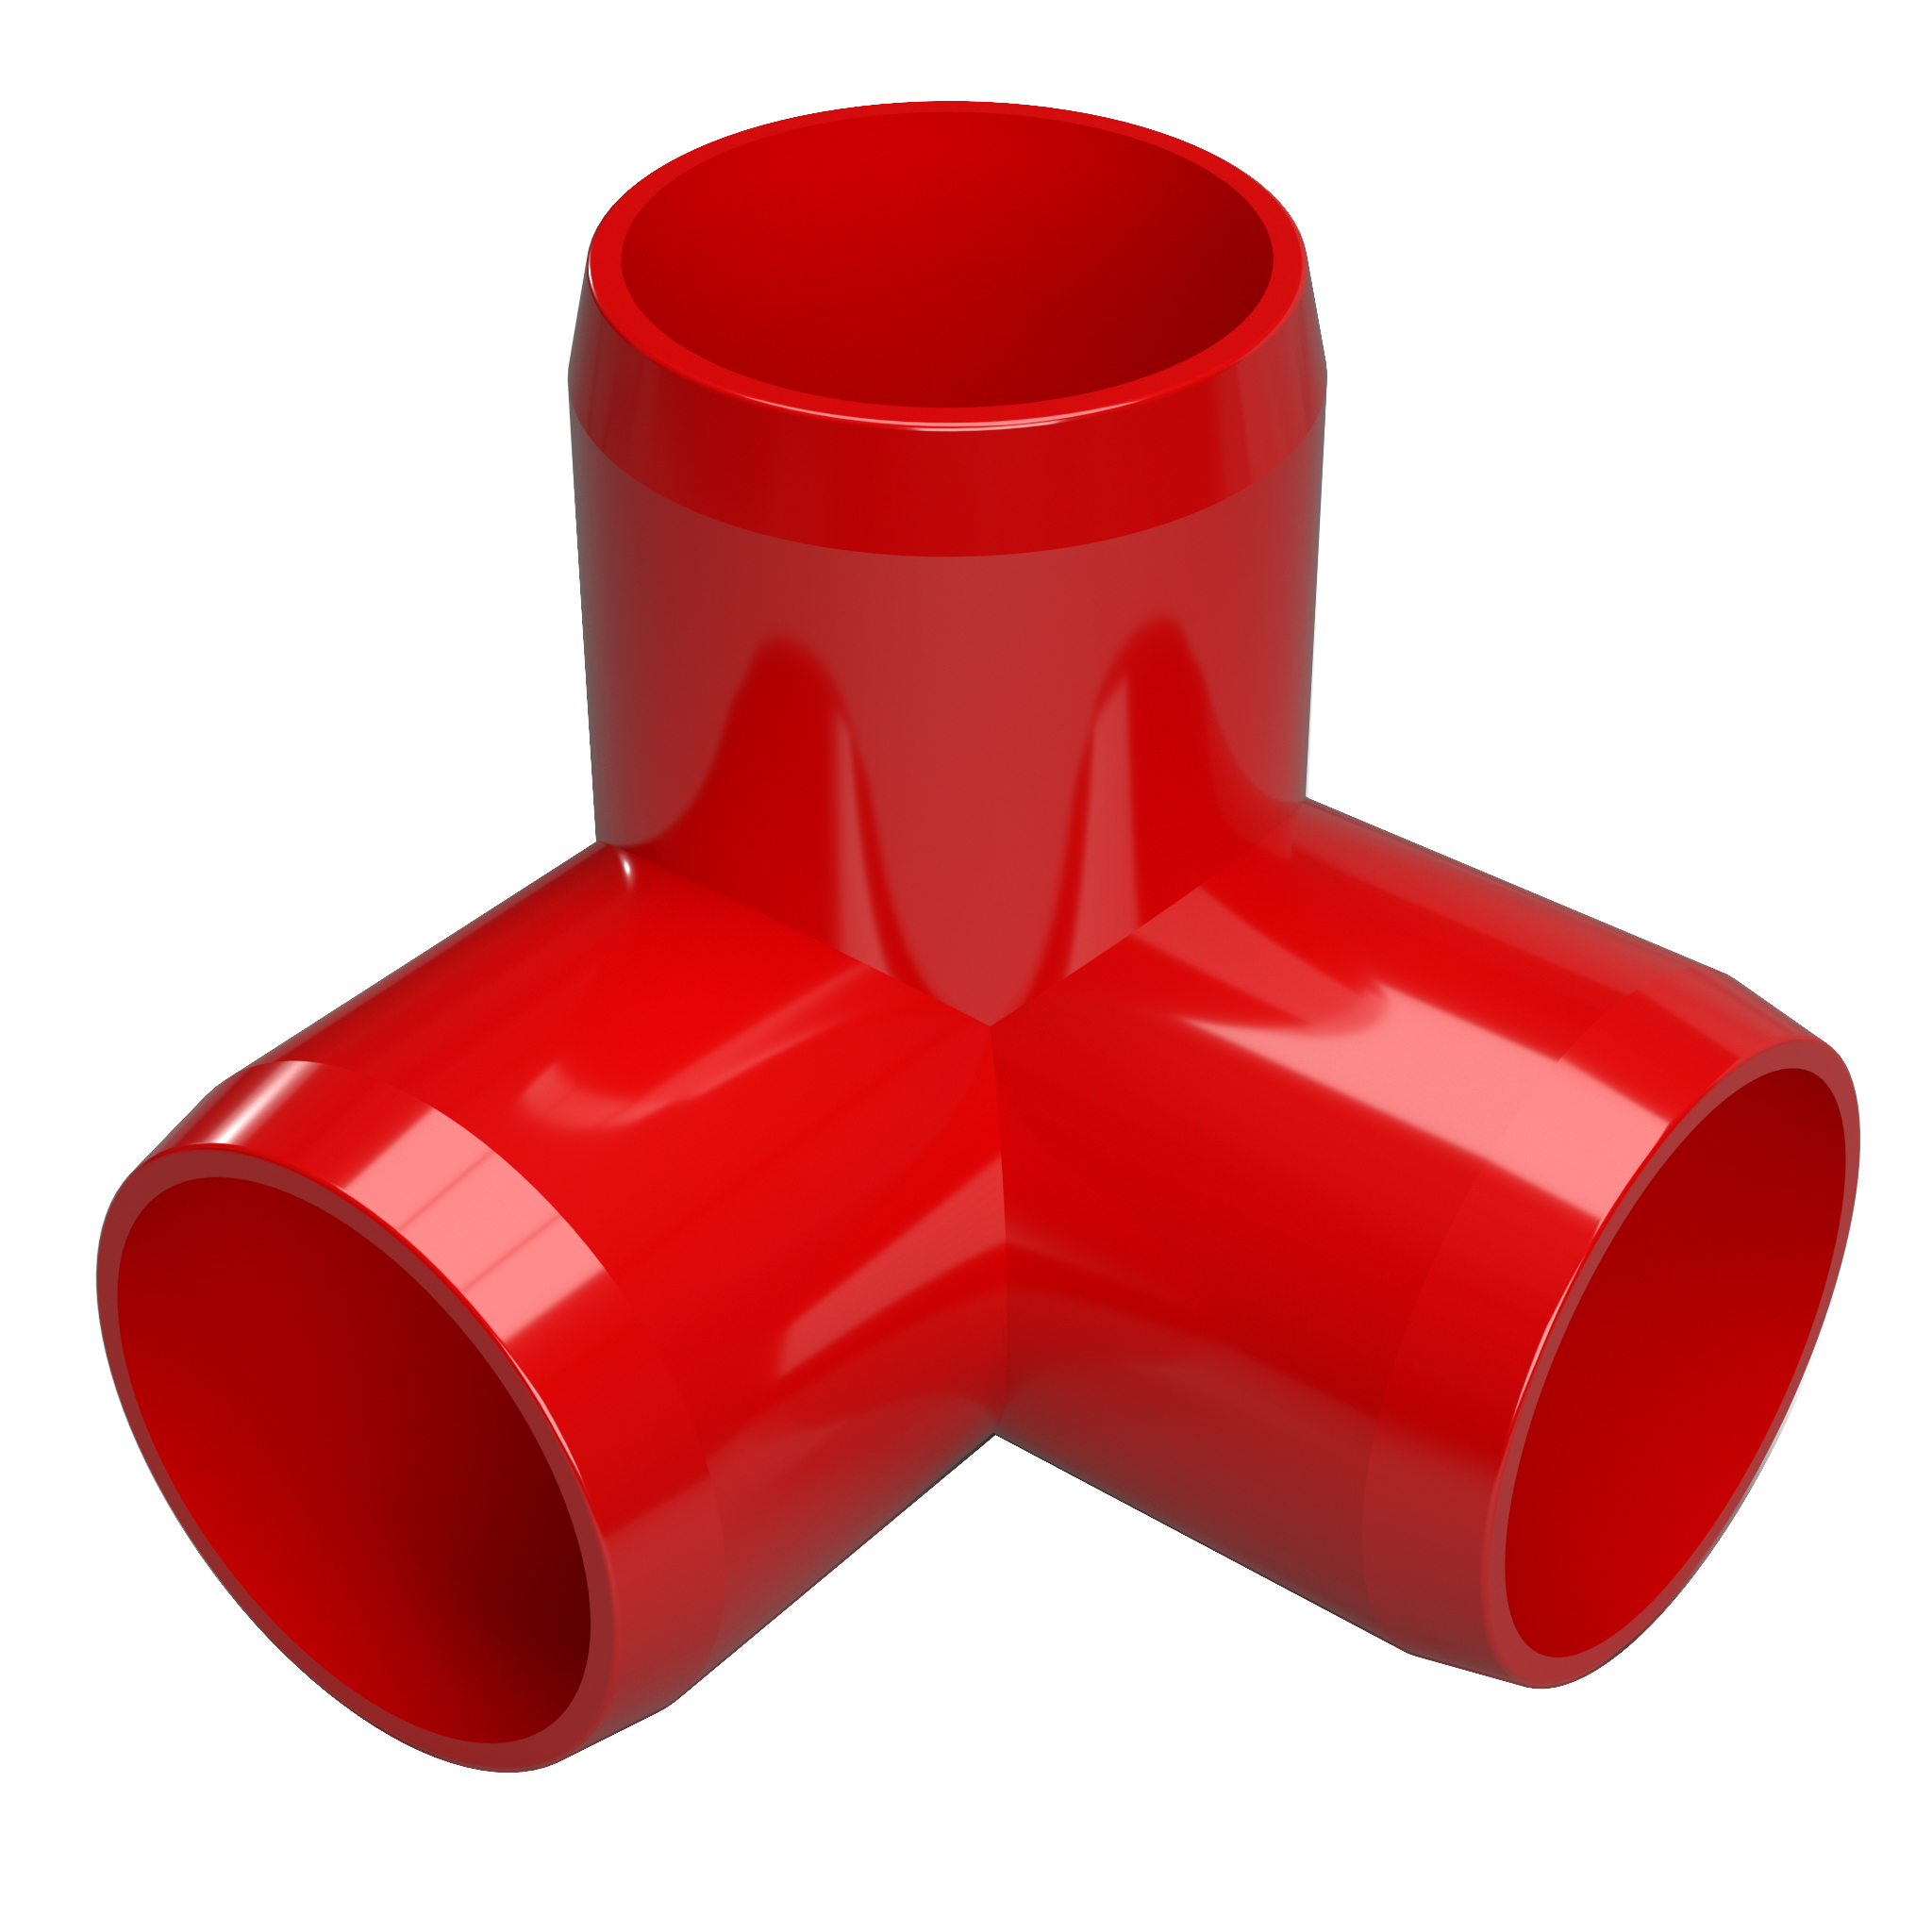 """FORMUFIT F1143WE-RD-4 3-Way Elbow PVC Fitting, Furniture Grade, 1-1/4"""" Size, Red , 4-Pack"""